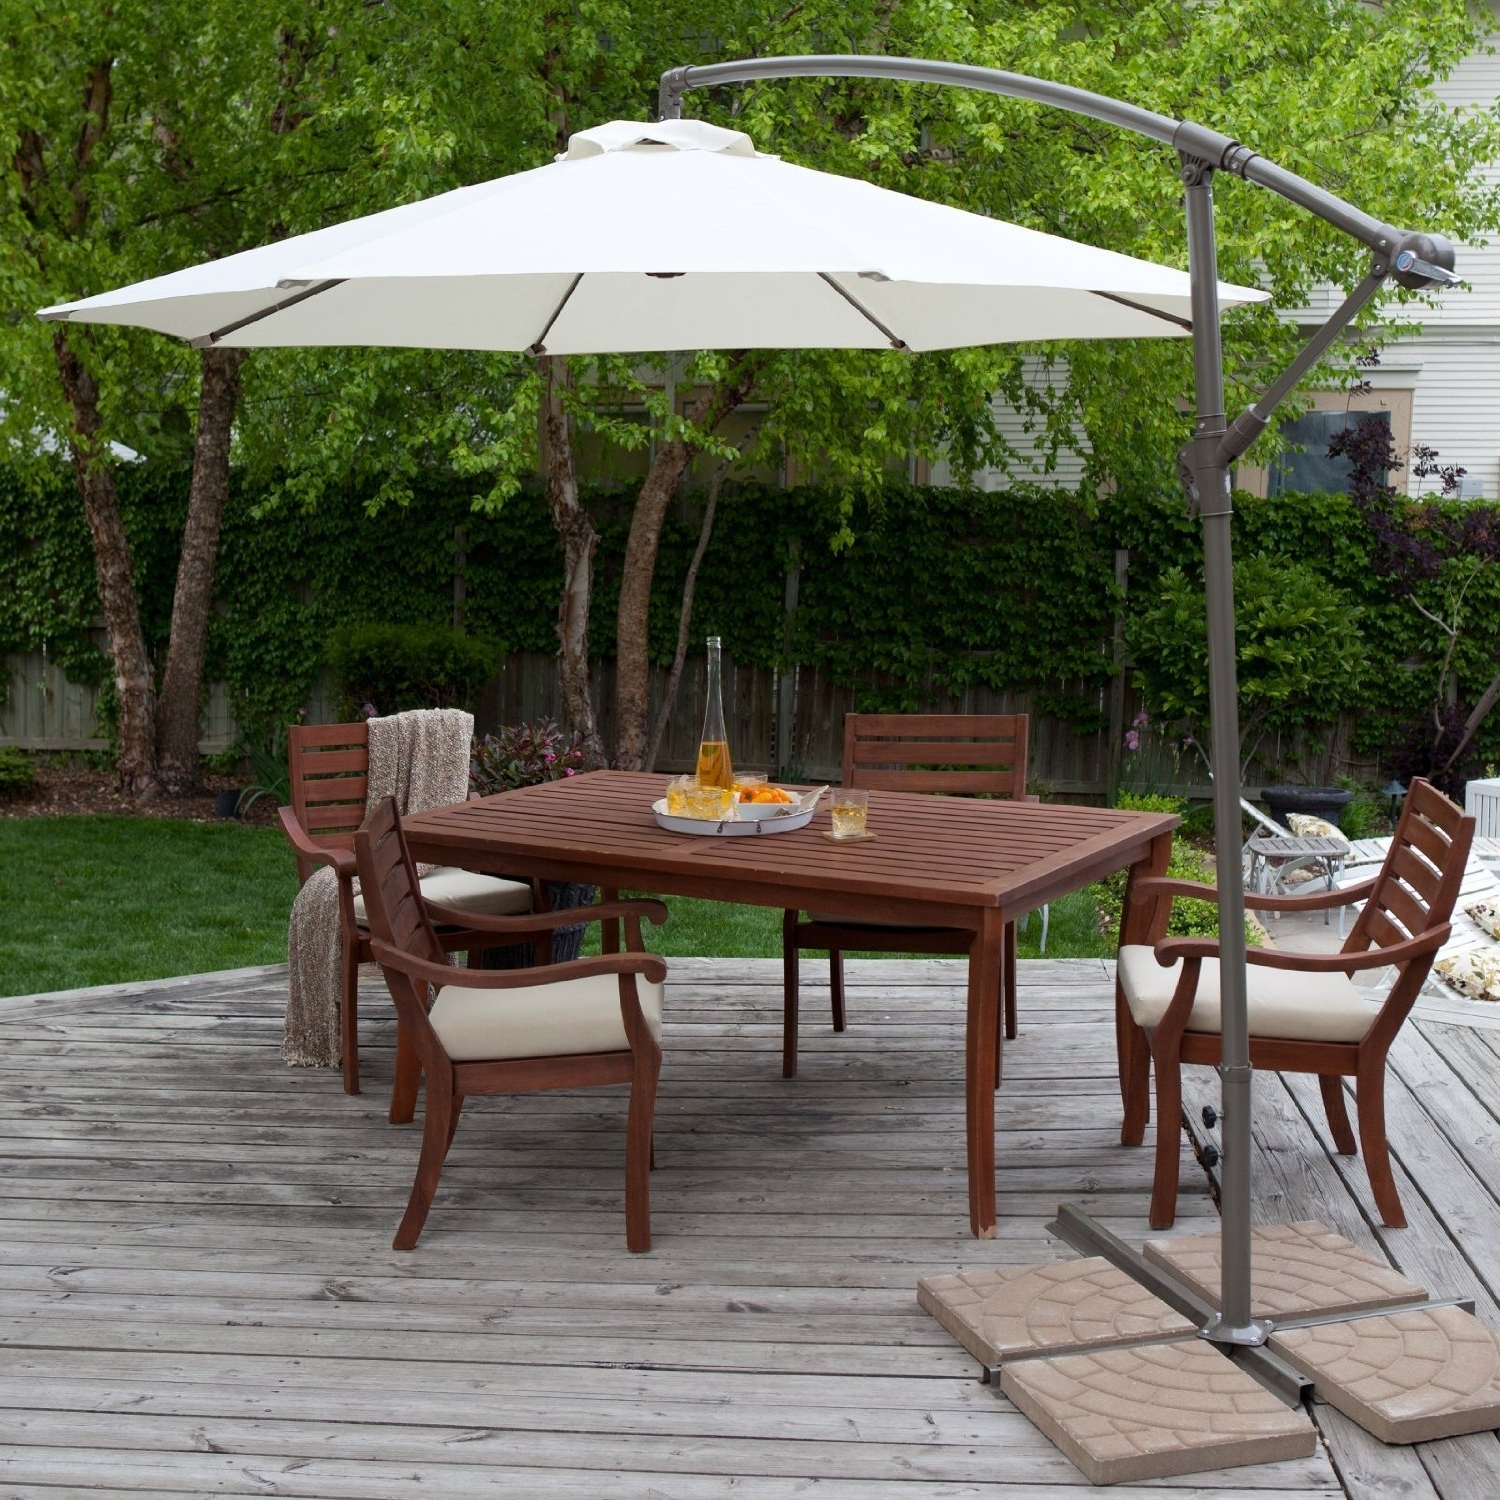 Fashionable Interior : Patio Table Chairs Umbrella Set New Furniture Sets With In Small Patio Tables With Umbrellas (View 6 of 20)